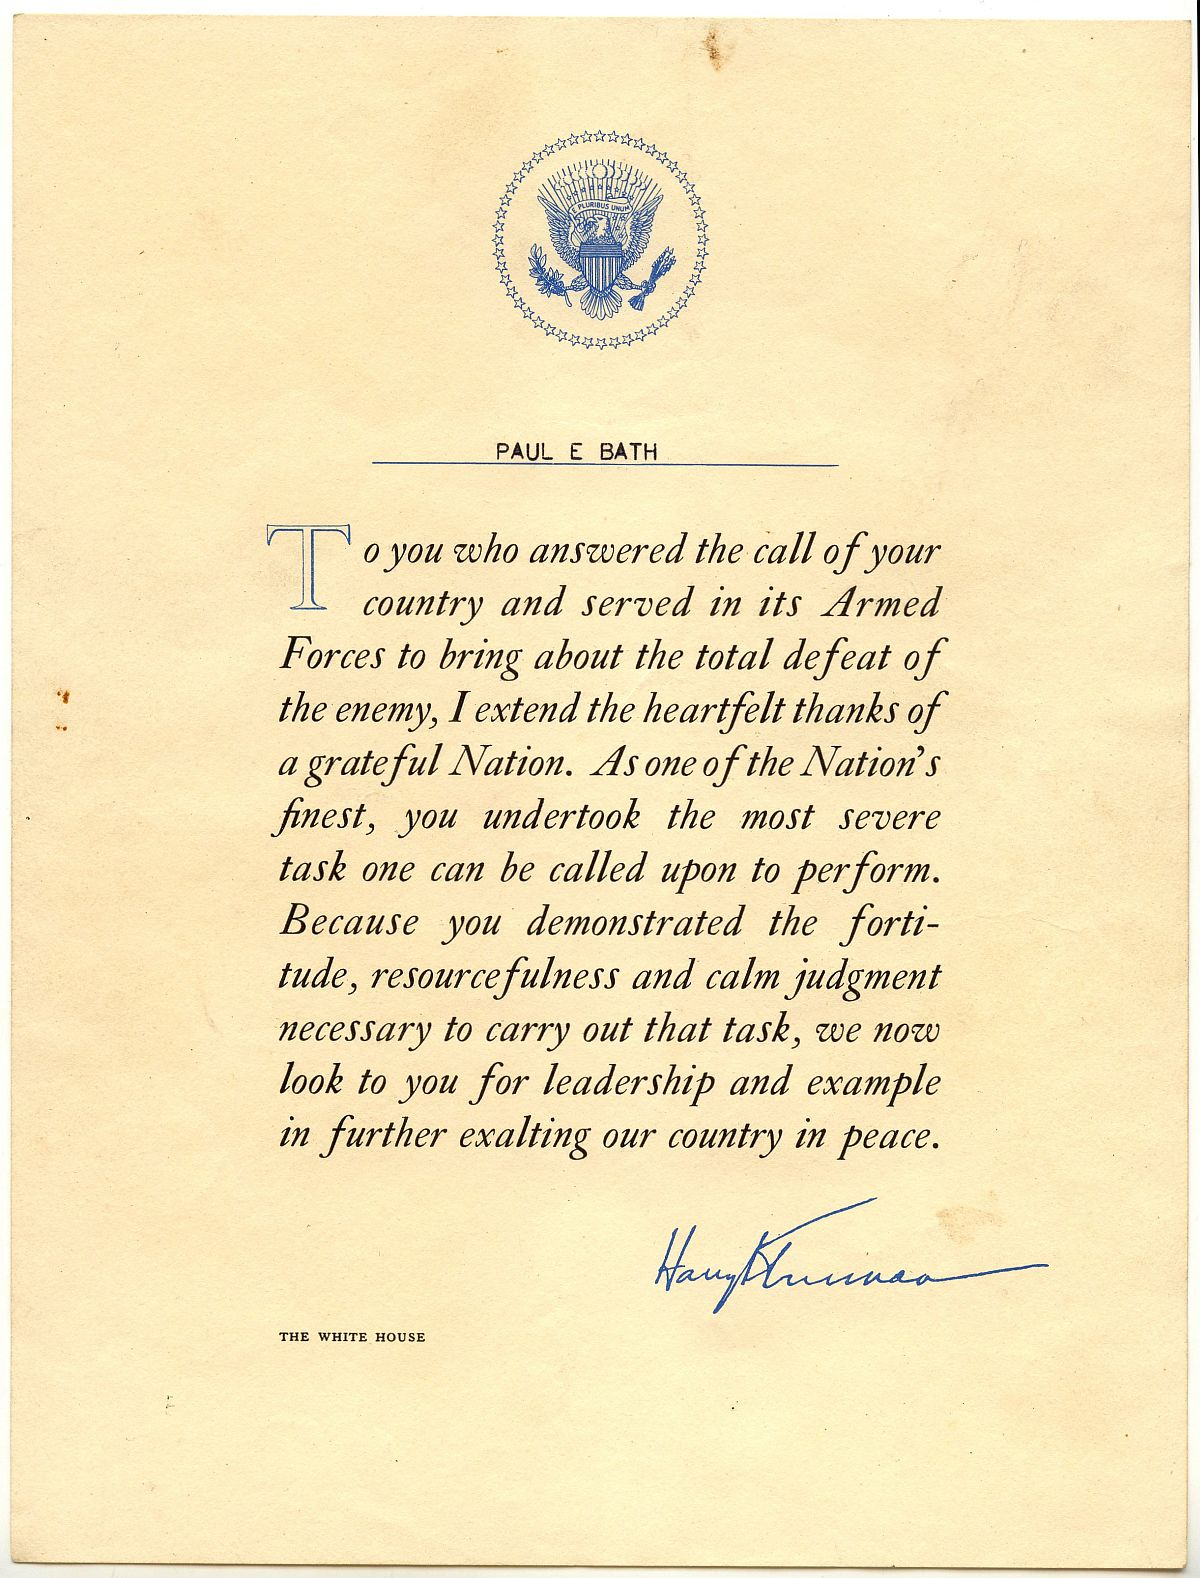 This certificate of appreciate is signed (not a real signature) by President Harry Truman.